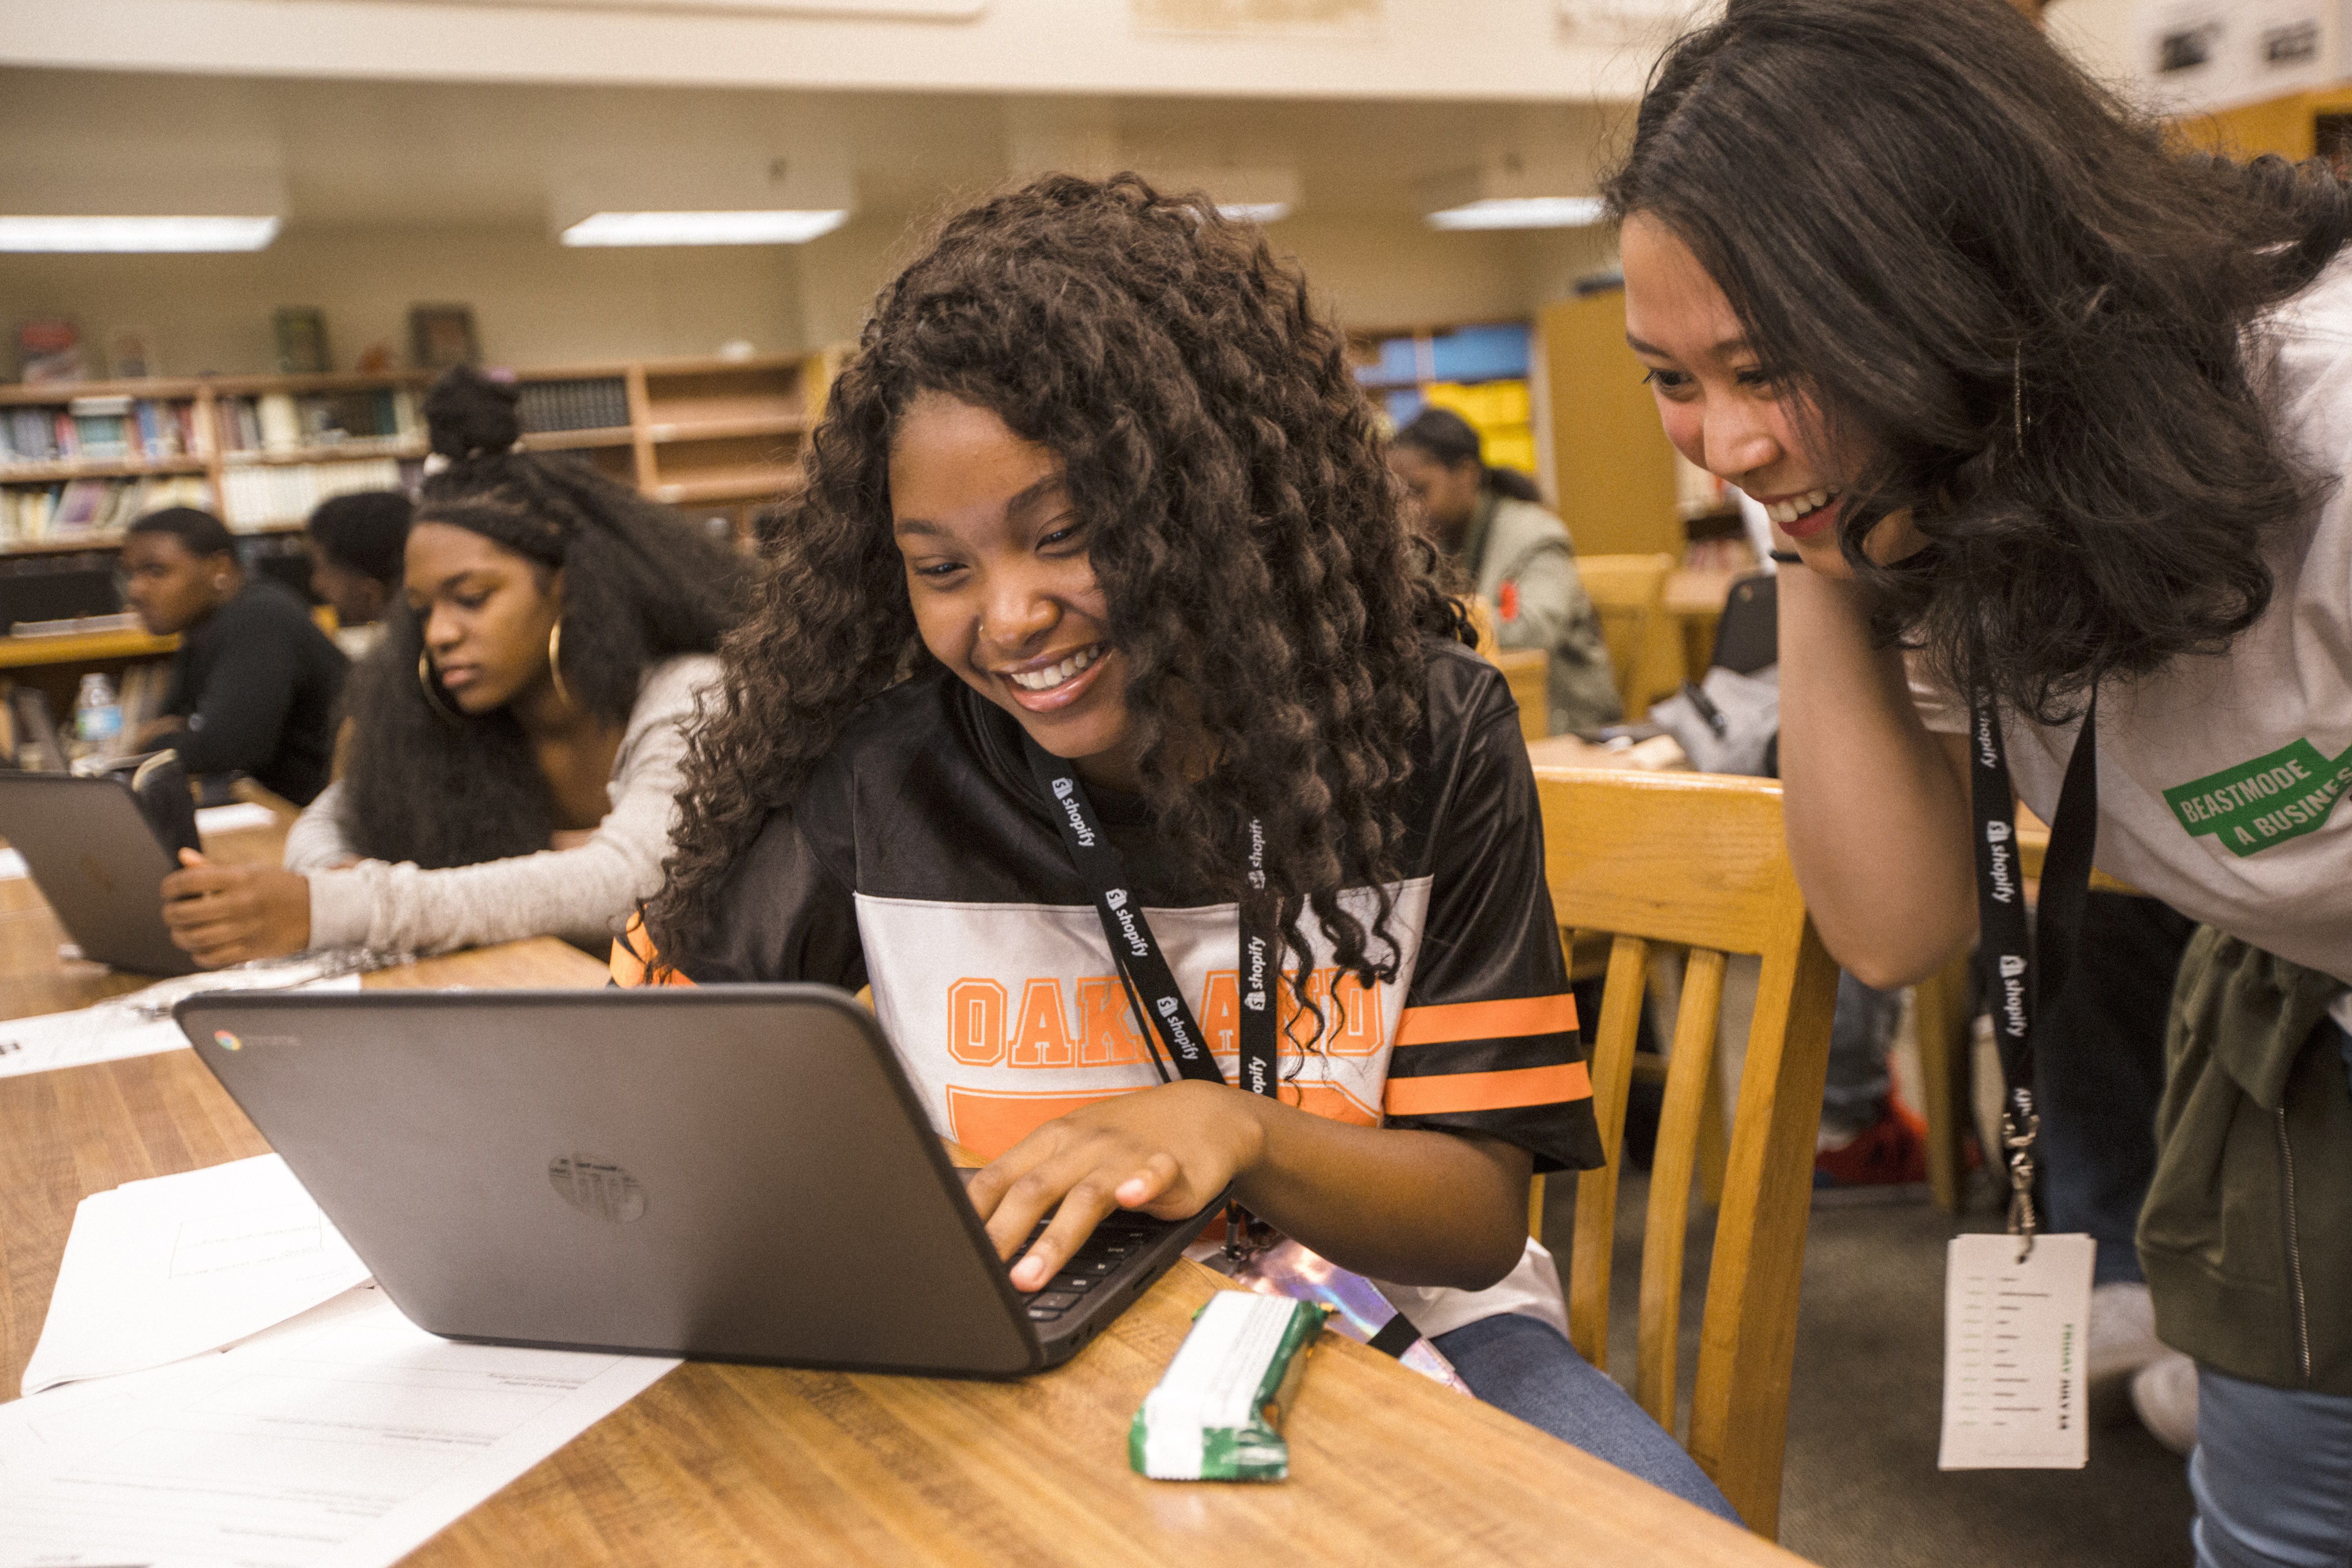 Shopify x BEASTMODE-A-Business - Students at Oakland Tech 2.jpg